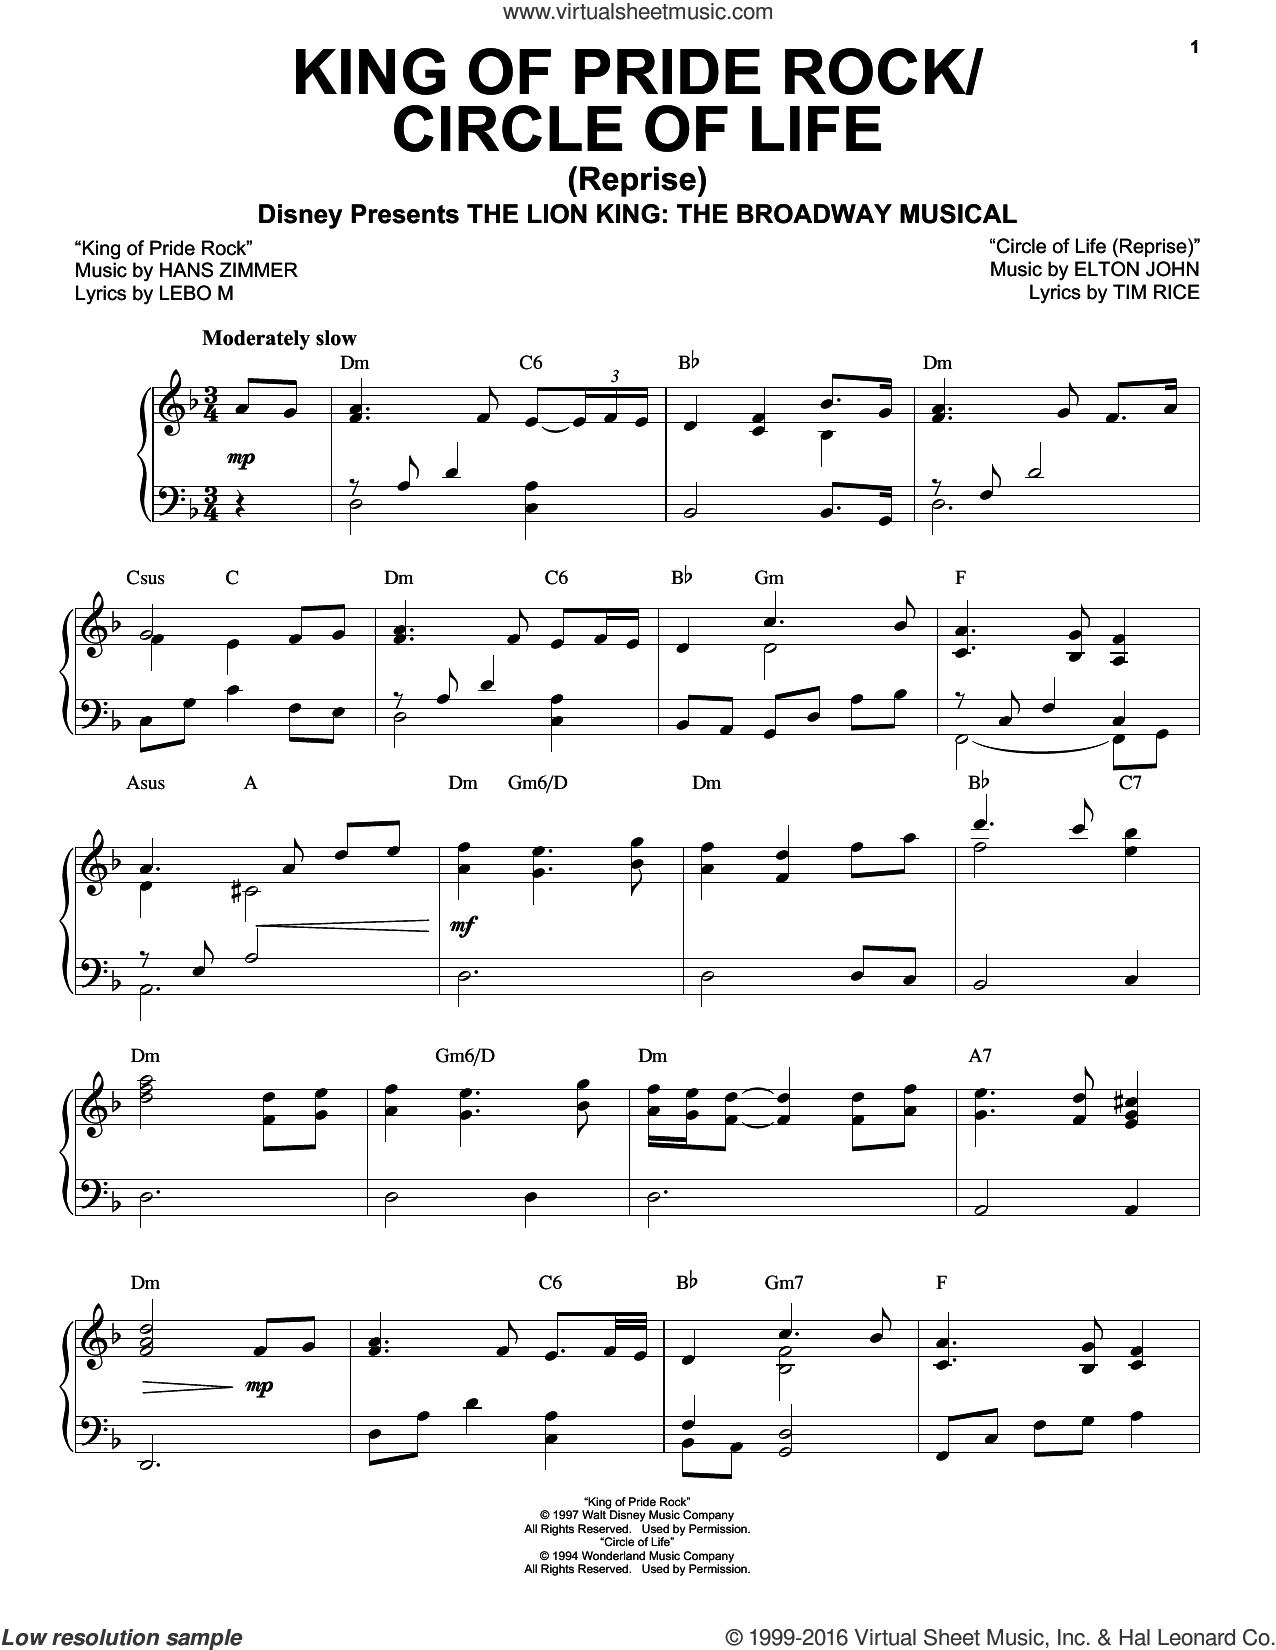 King Of Pride Rock sheet music for voice, piano or guitar by Lebo M, Elton John, Tim Rice and Hans Zimmer. Score Image Preview.